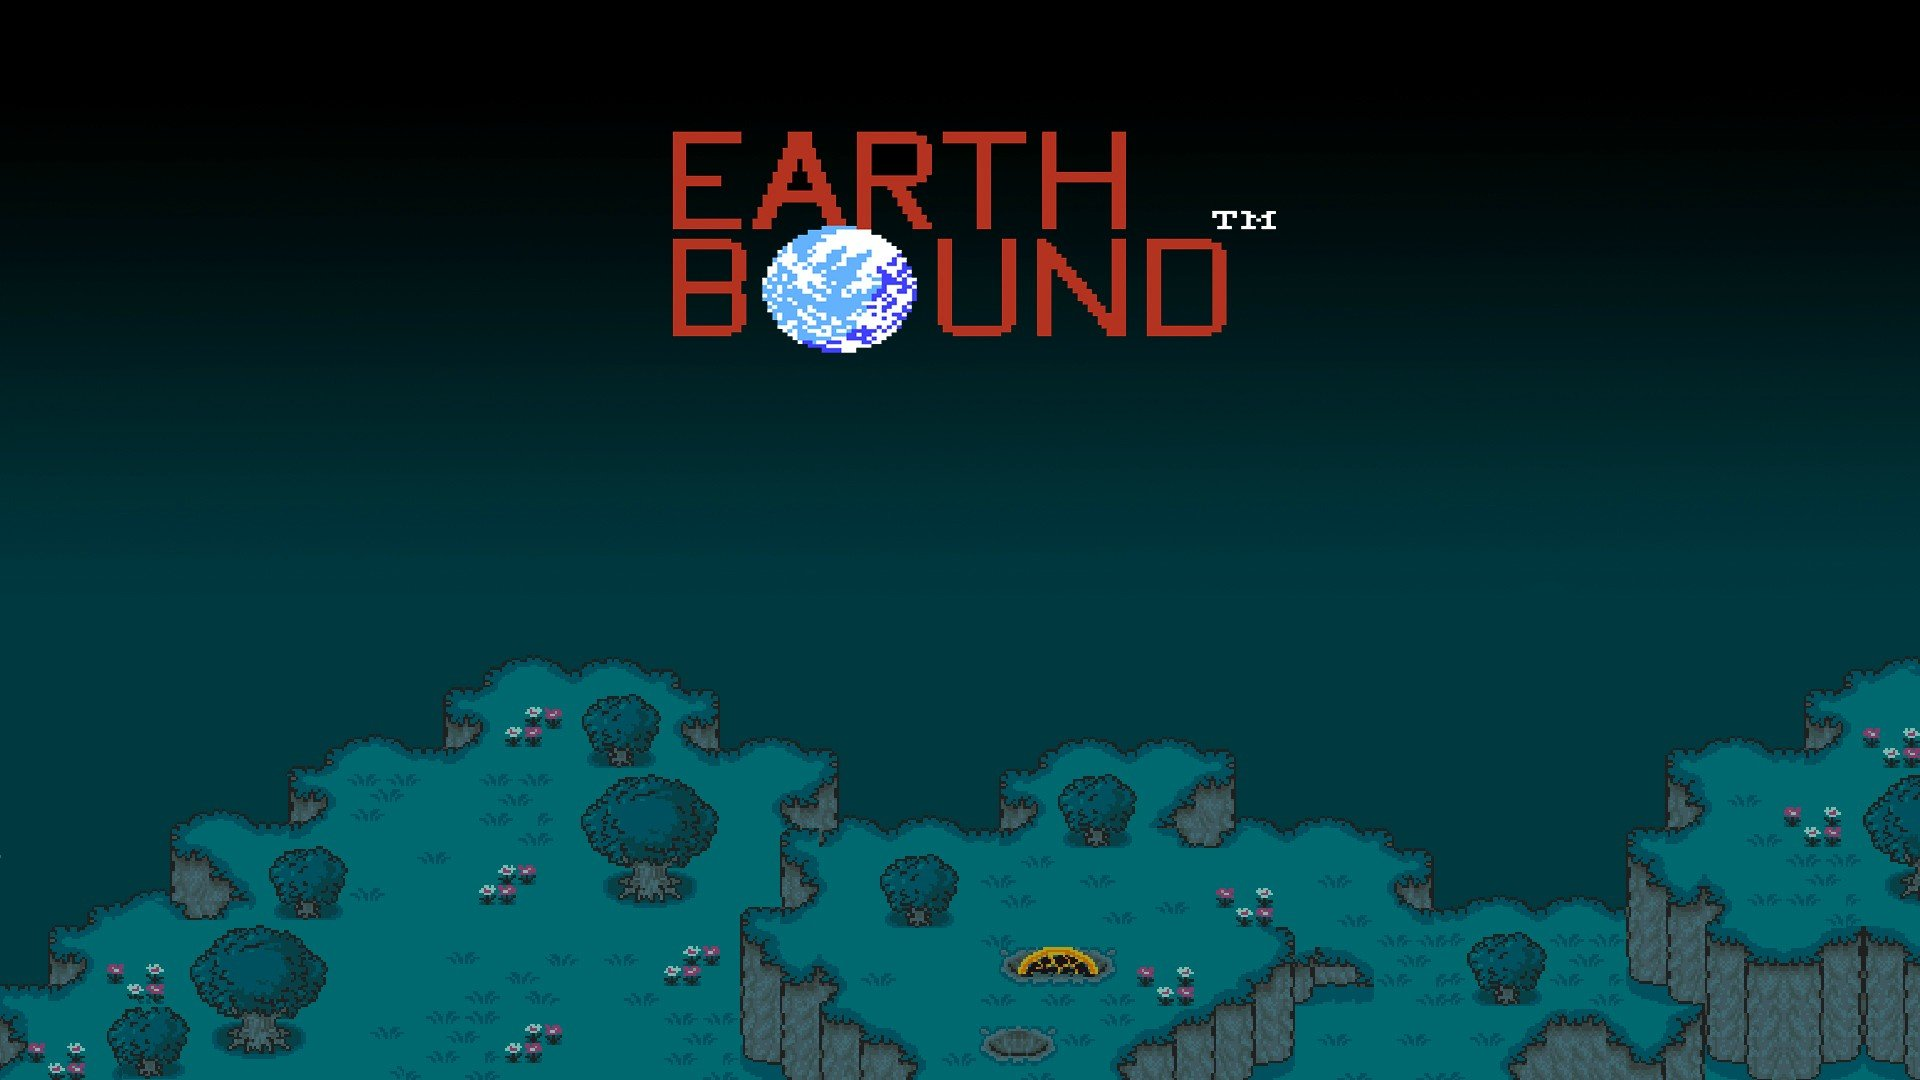 Earthbound wallpaper I made gaming 1920x1080